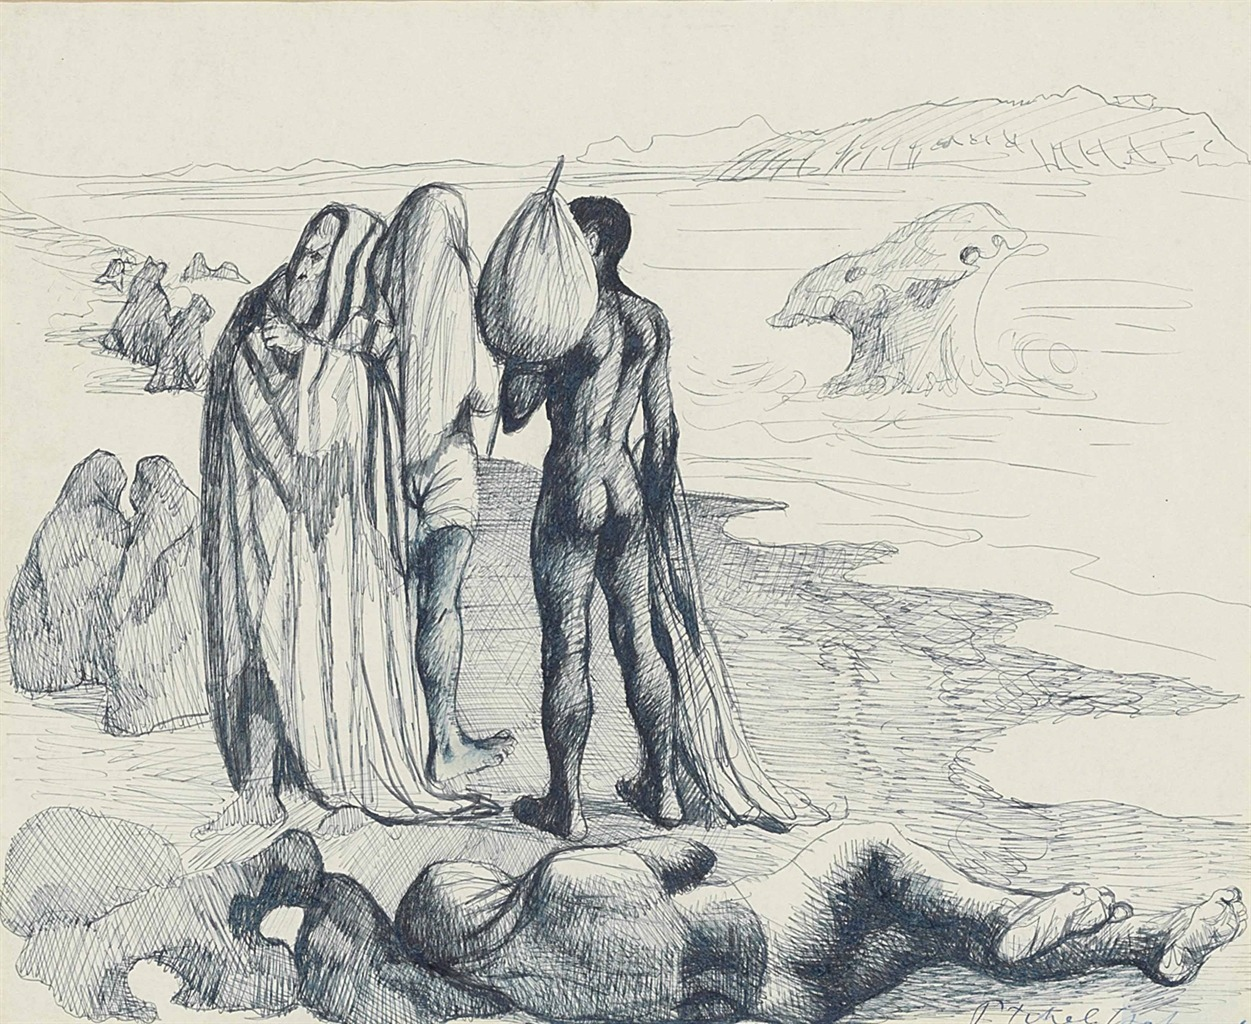 """thunderstruck9: """"Pavel Tchelitchew (Russian, 1898-1957), Figures on a beach, 1943. Ink on paper, 36 x 43 cm. """""""